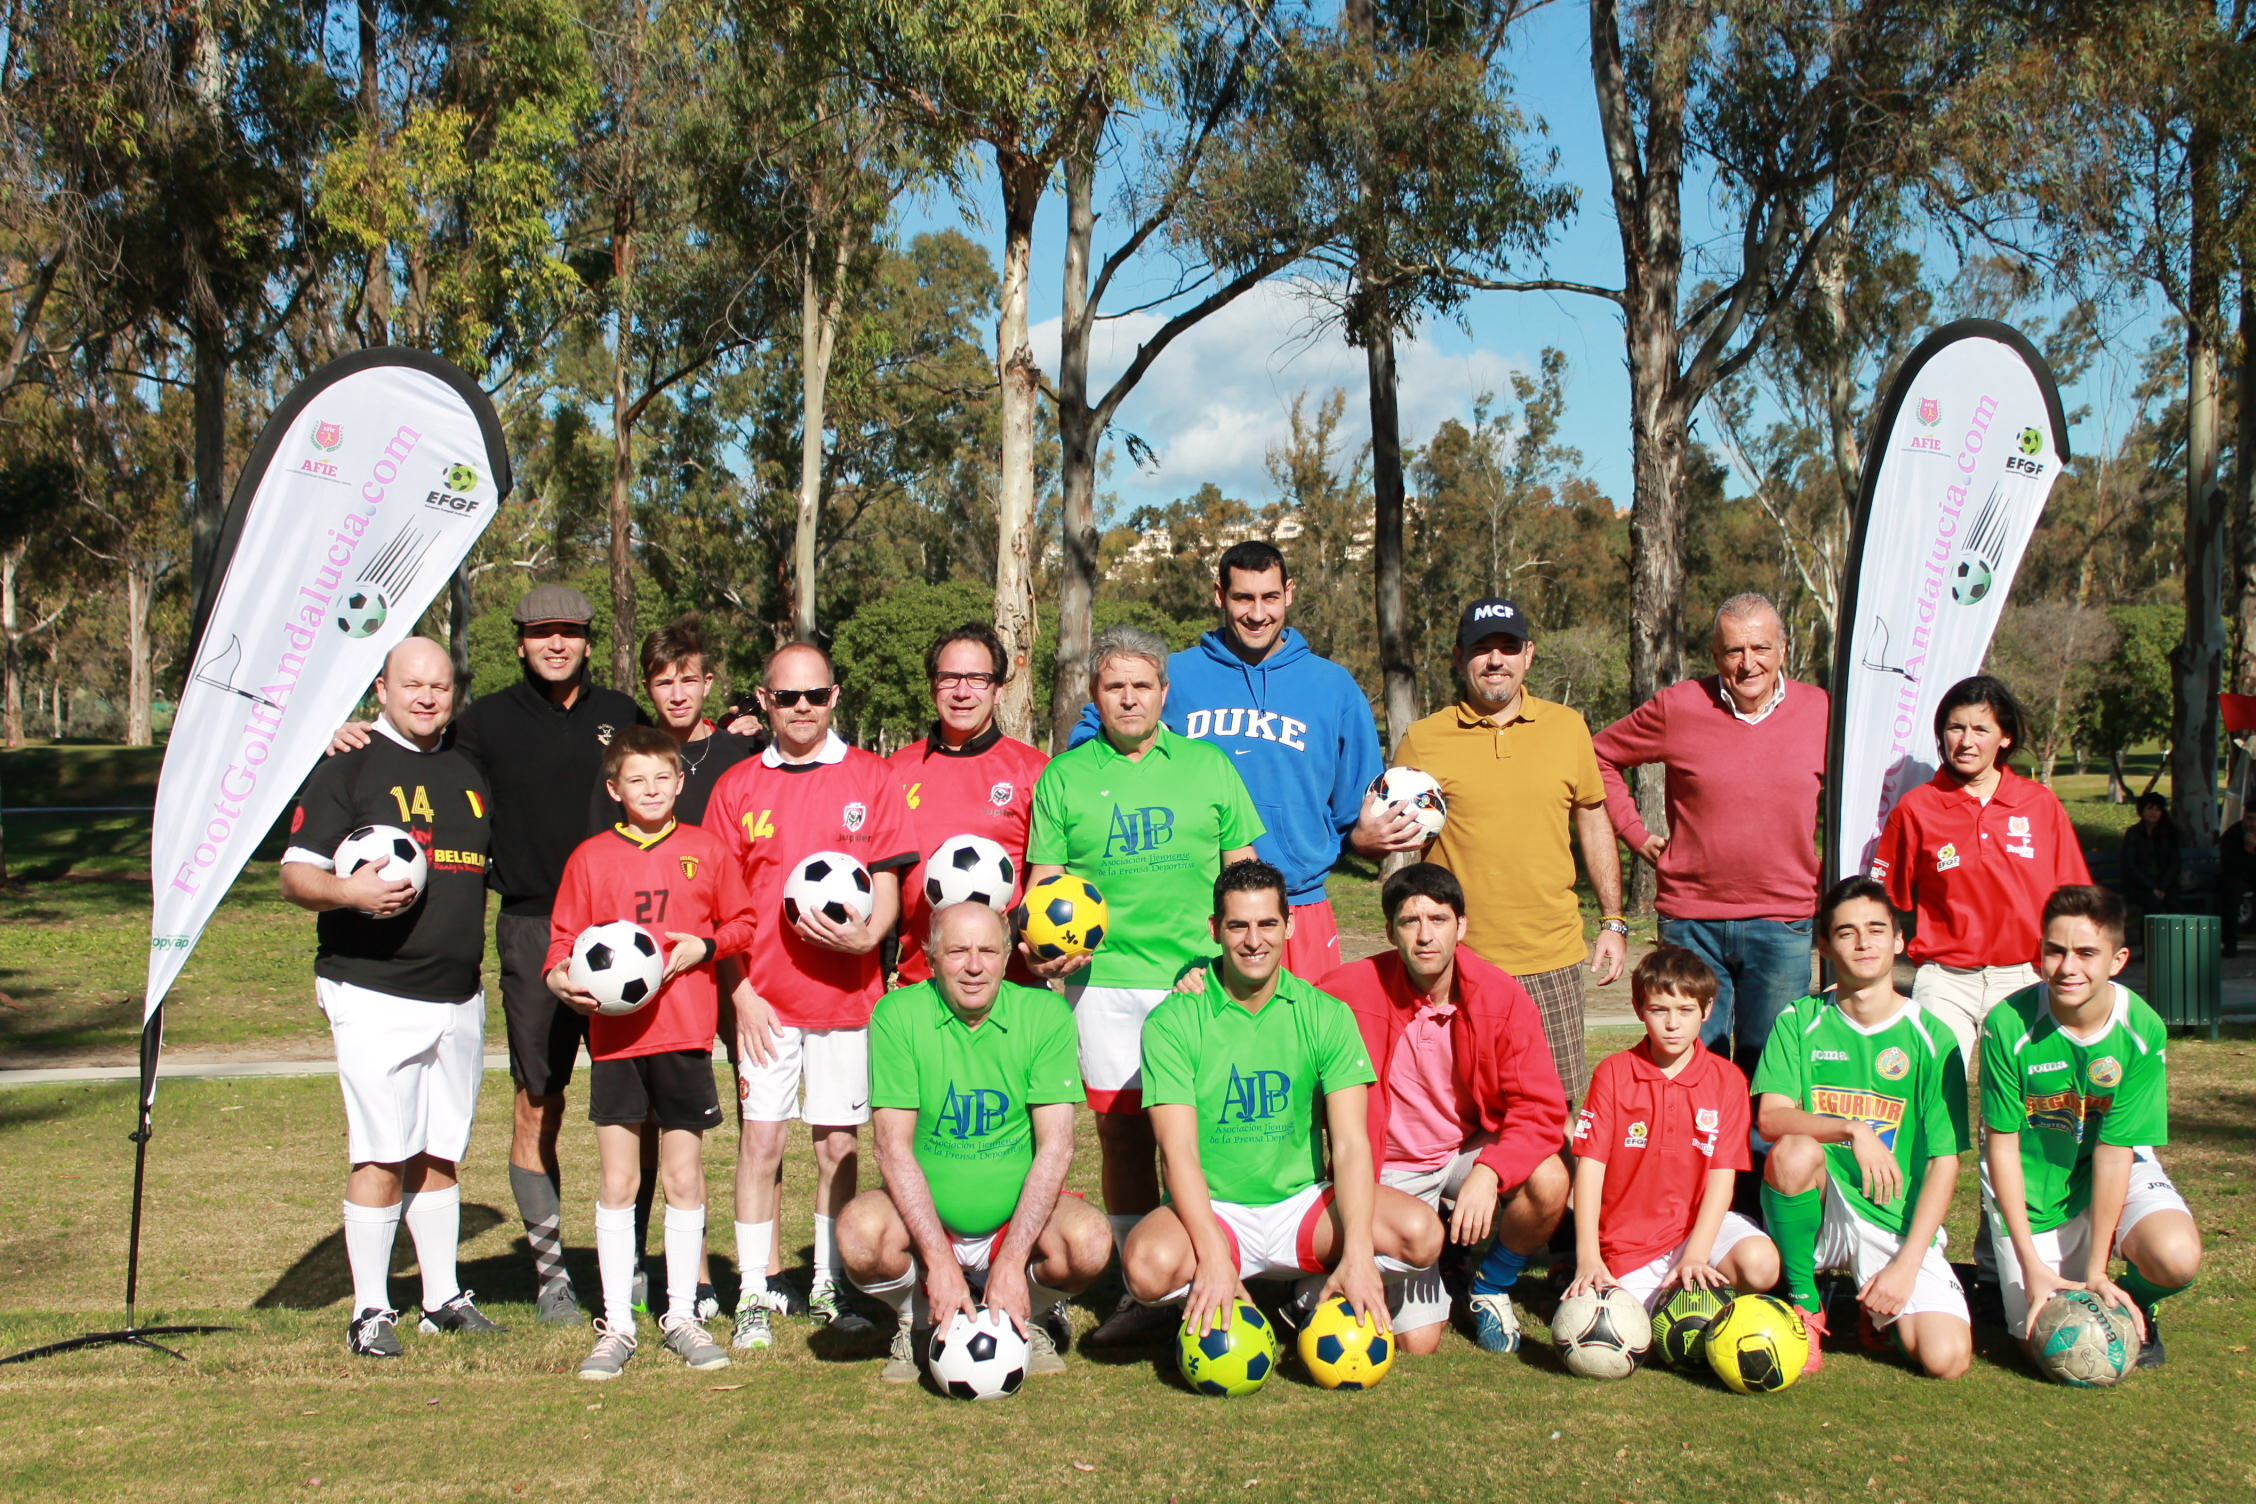 clinic footgolf periodistas y deportistas atalaya golf afies andalucia